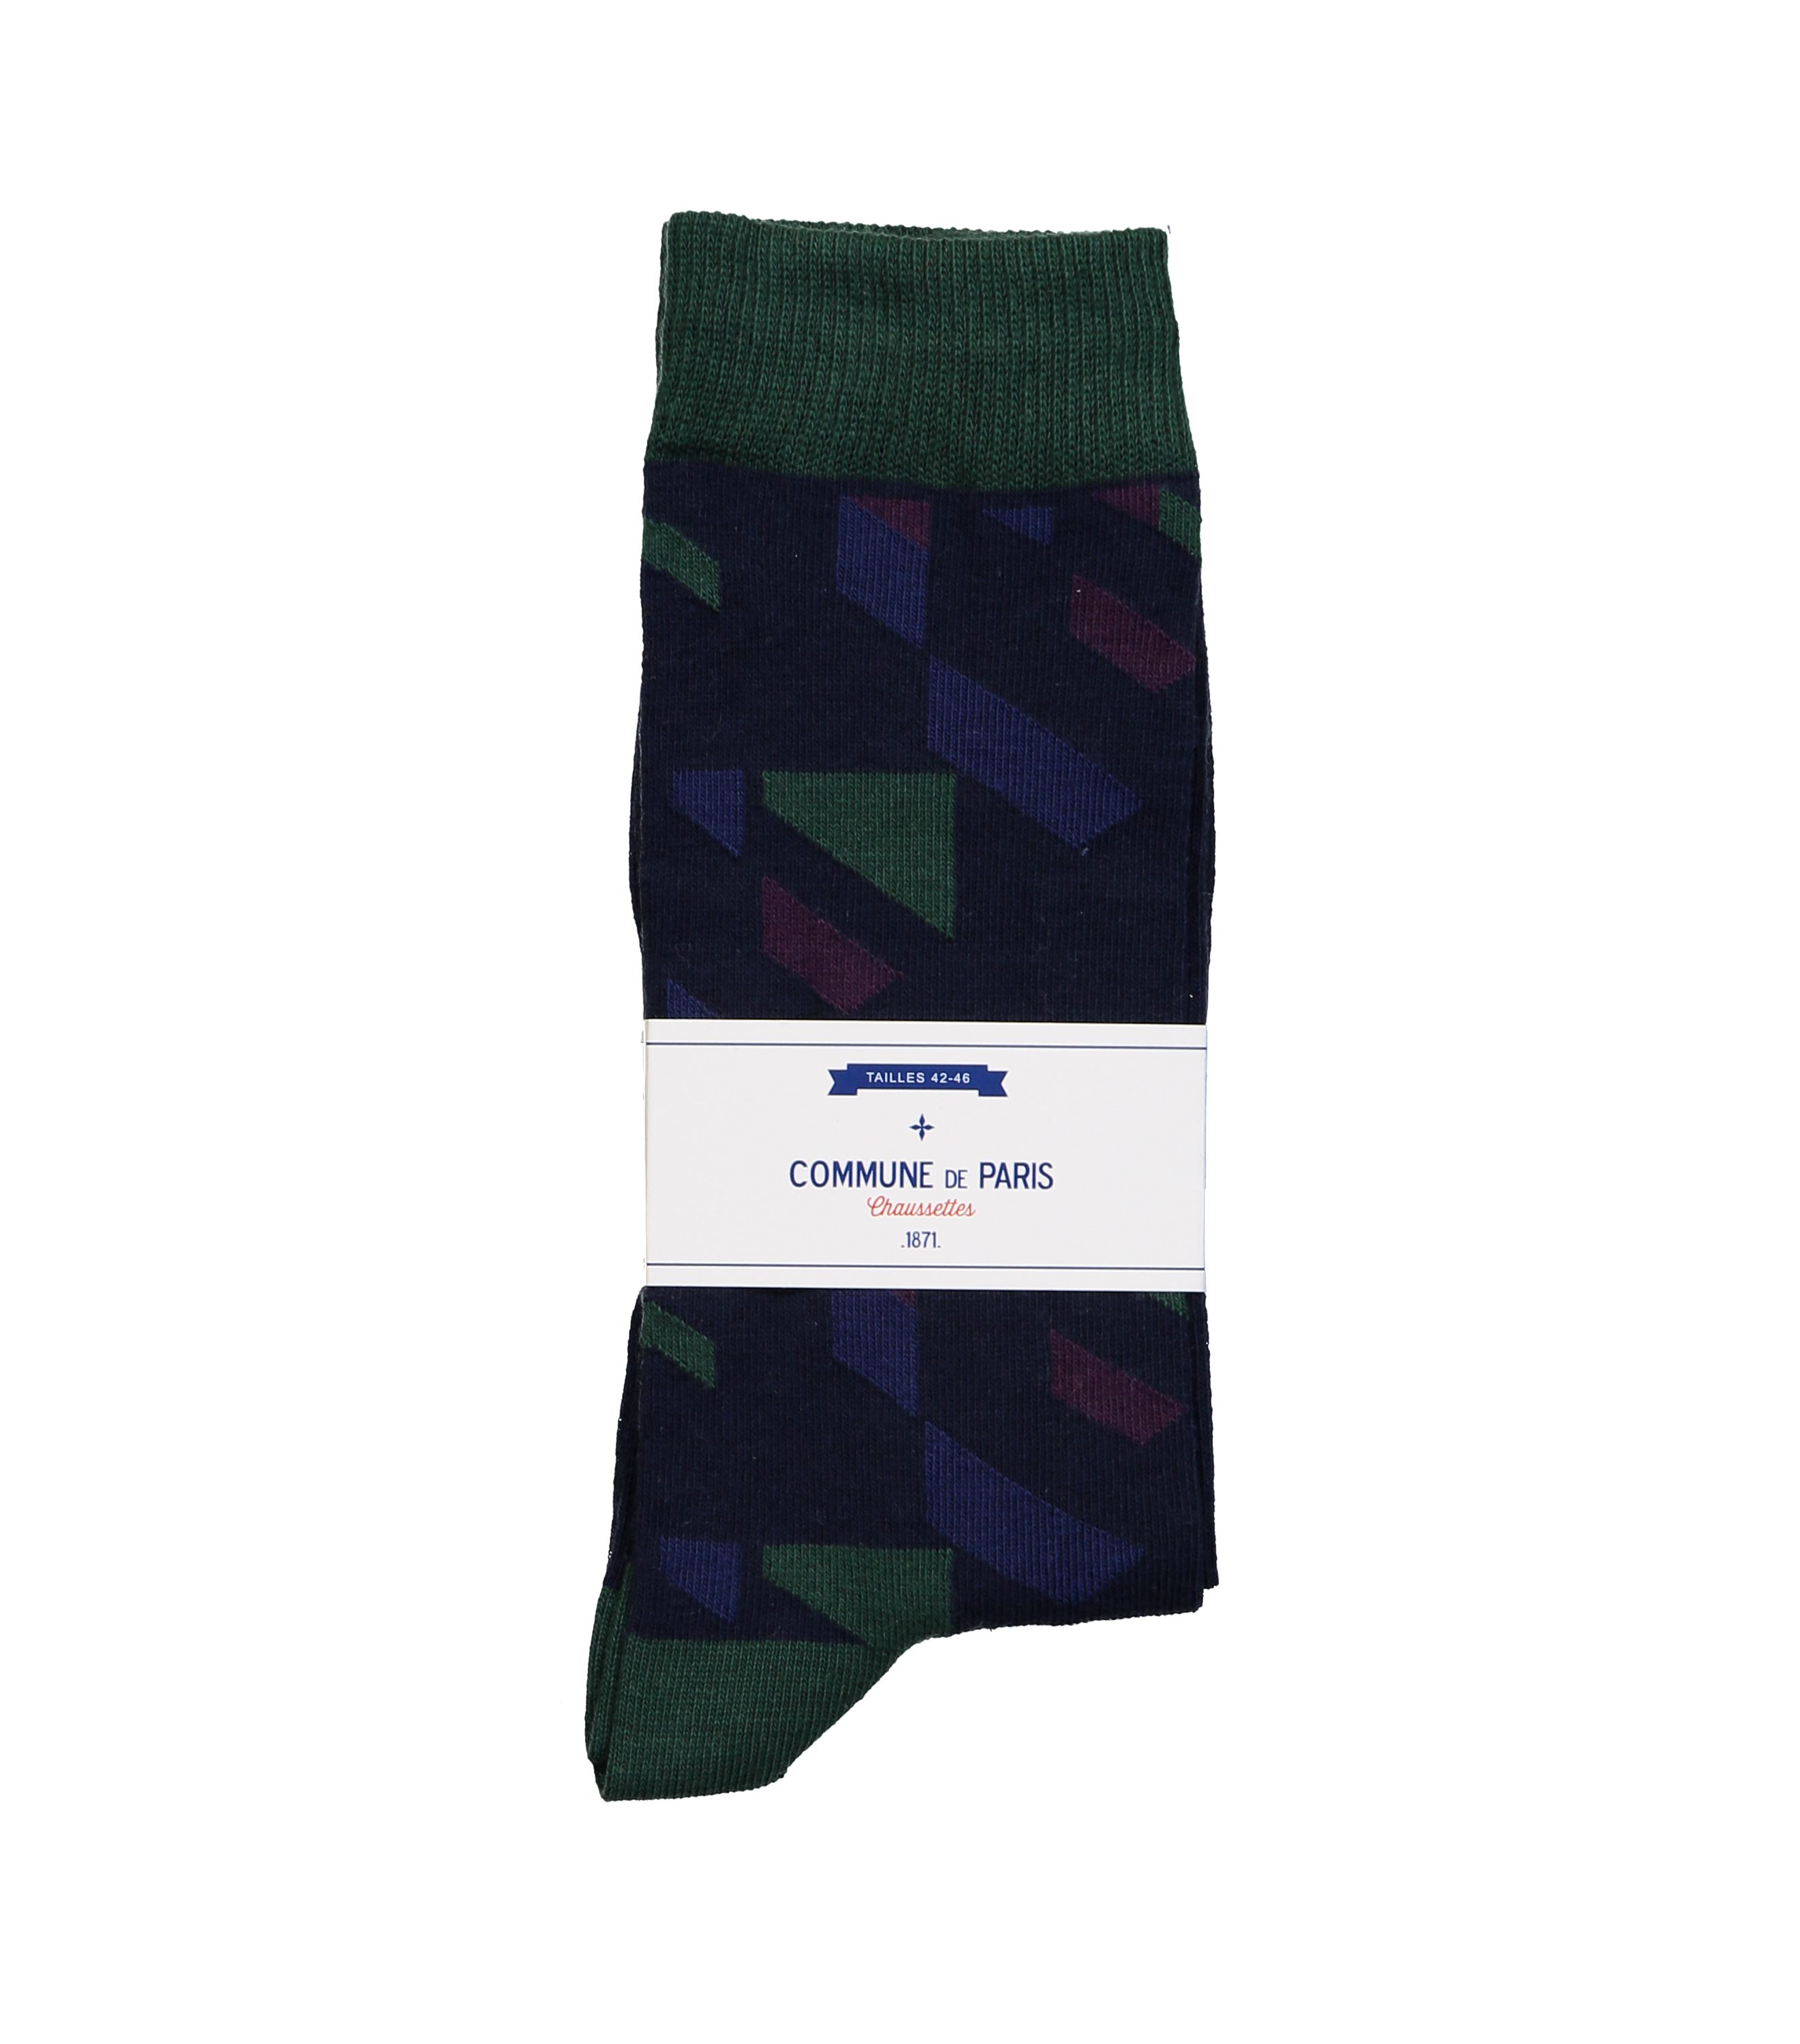 SOCKS BEAUREPAIRE - Navy/green